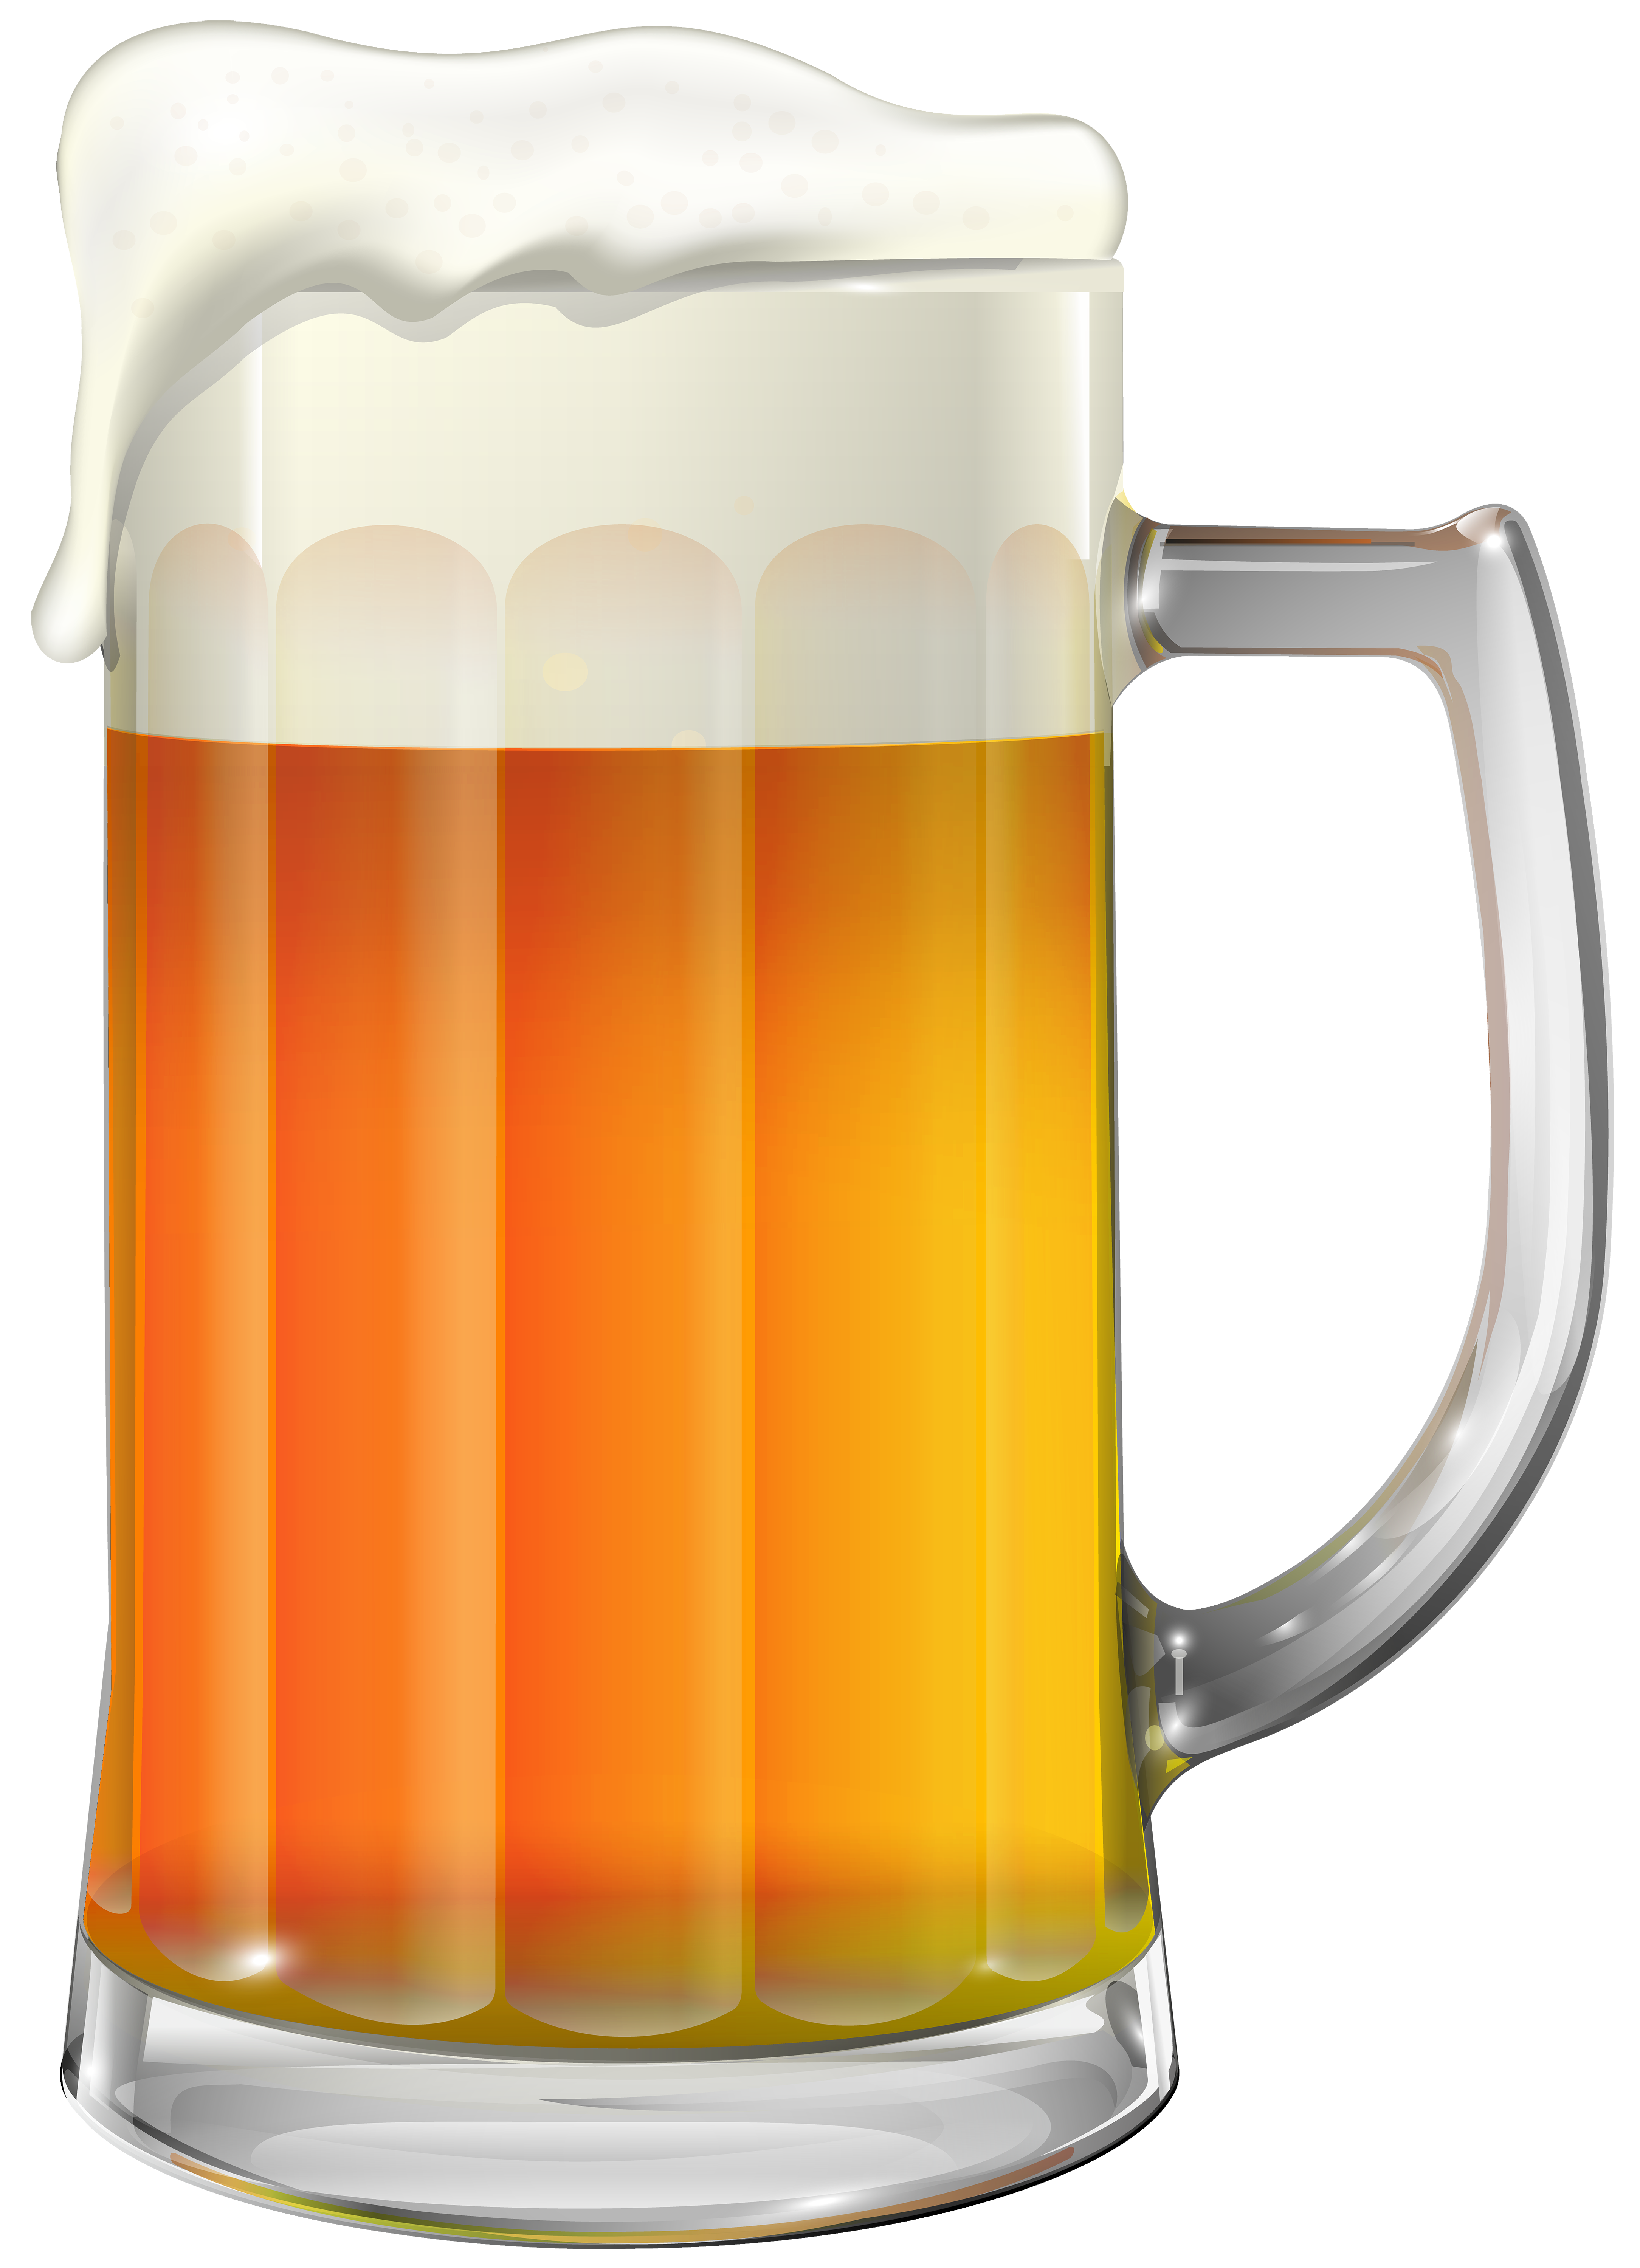 Beer Mug Transparent Png Clip Art Image Gallery Yopriceville High Quality Images And Transparent Png Free Clipart Beer Mug Clip Art Beer Mug Beer